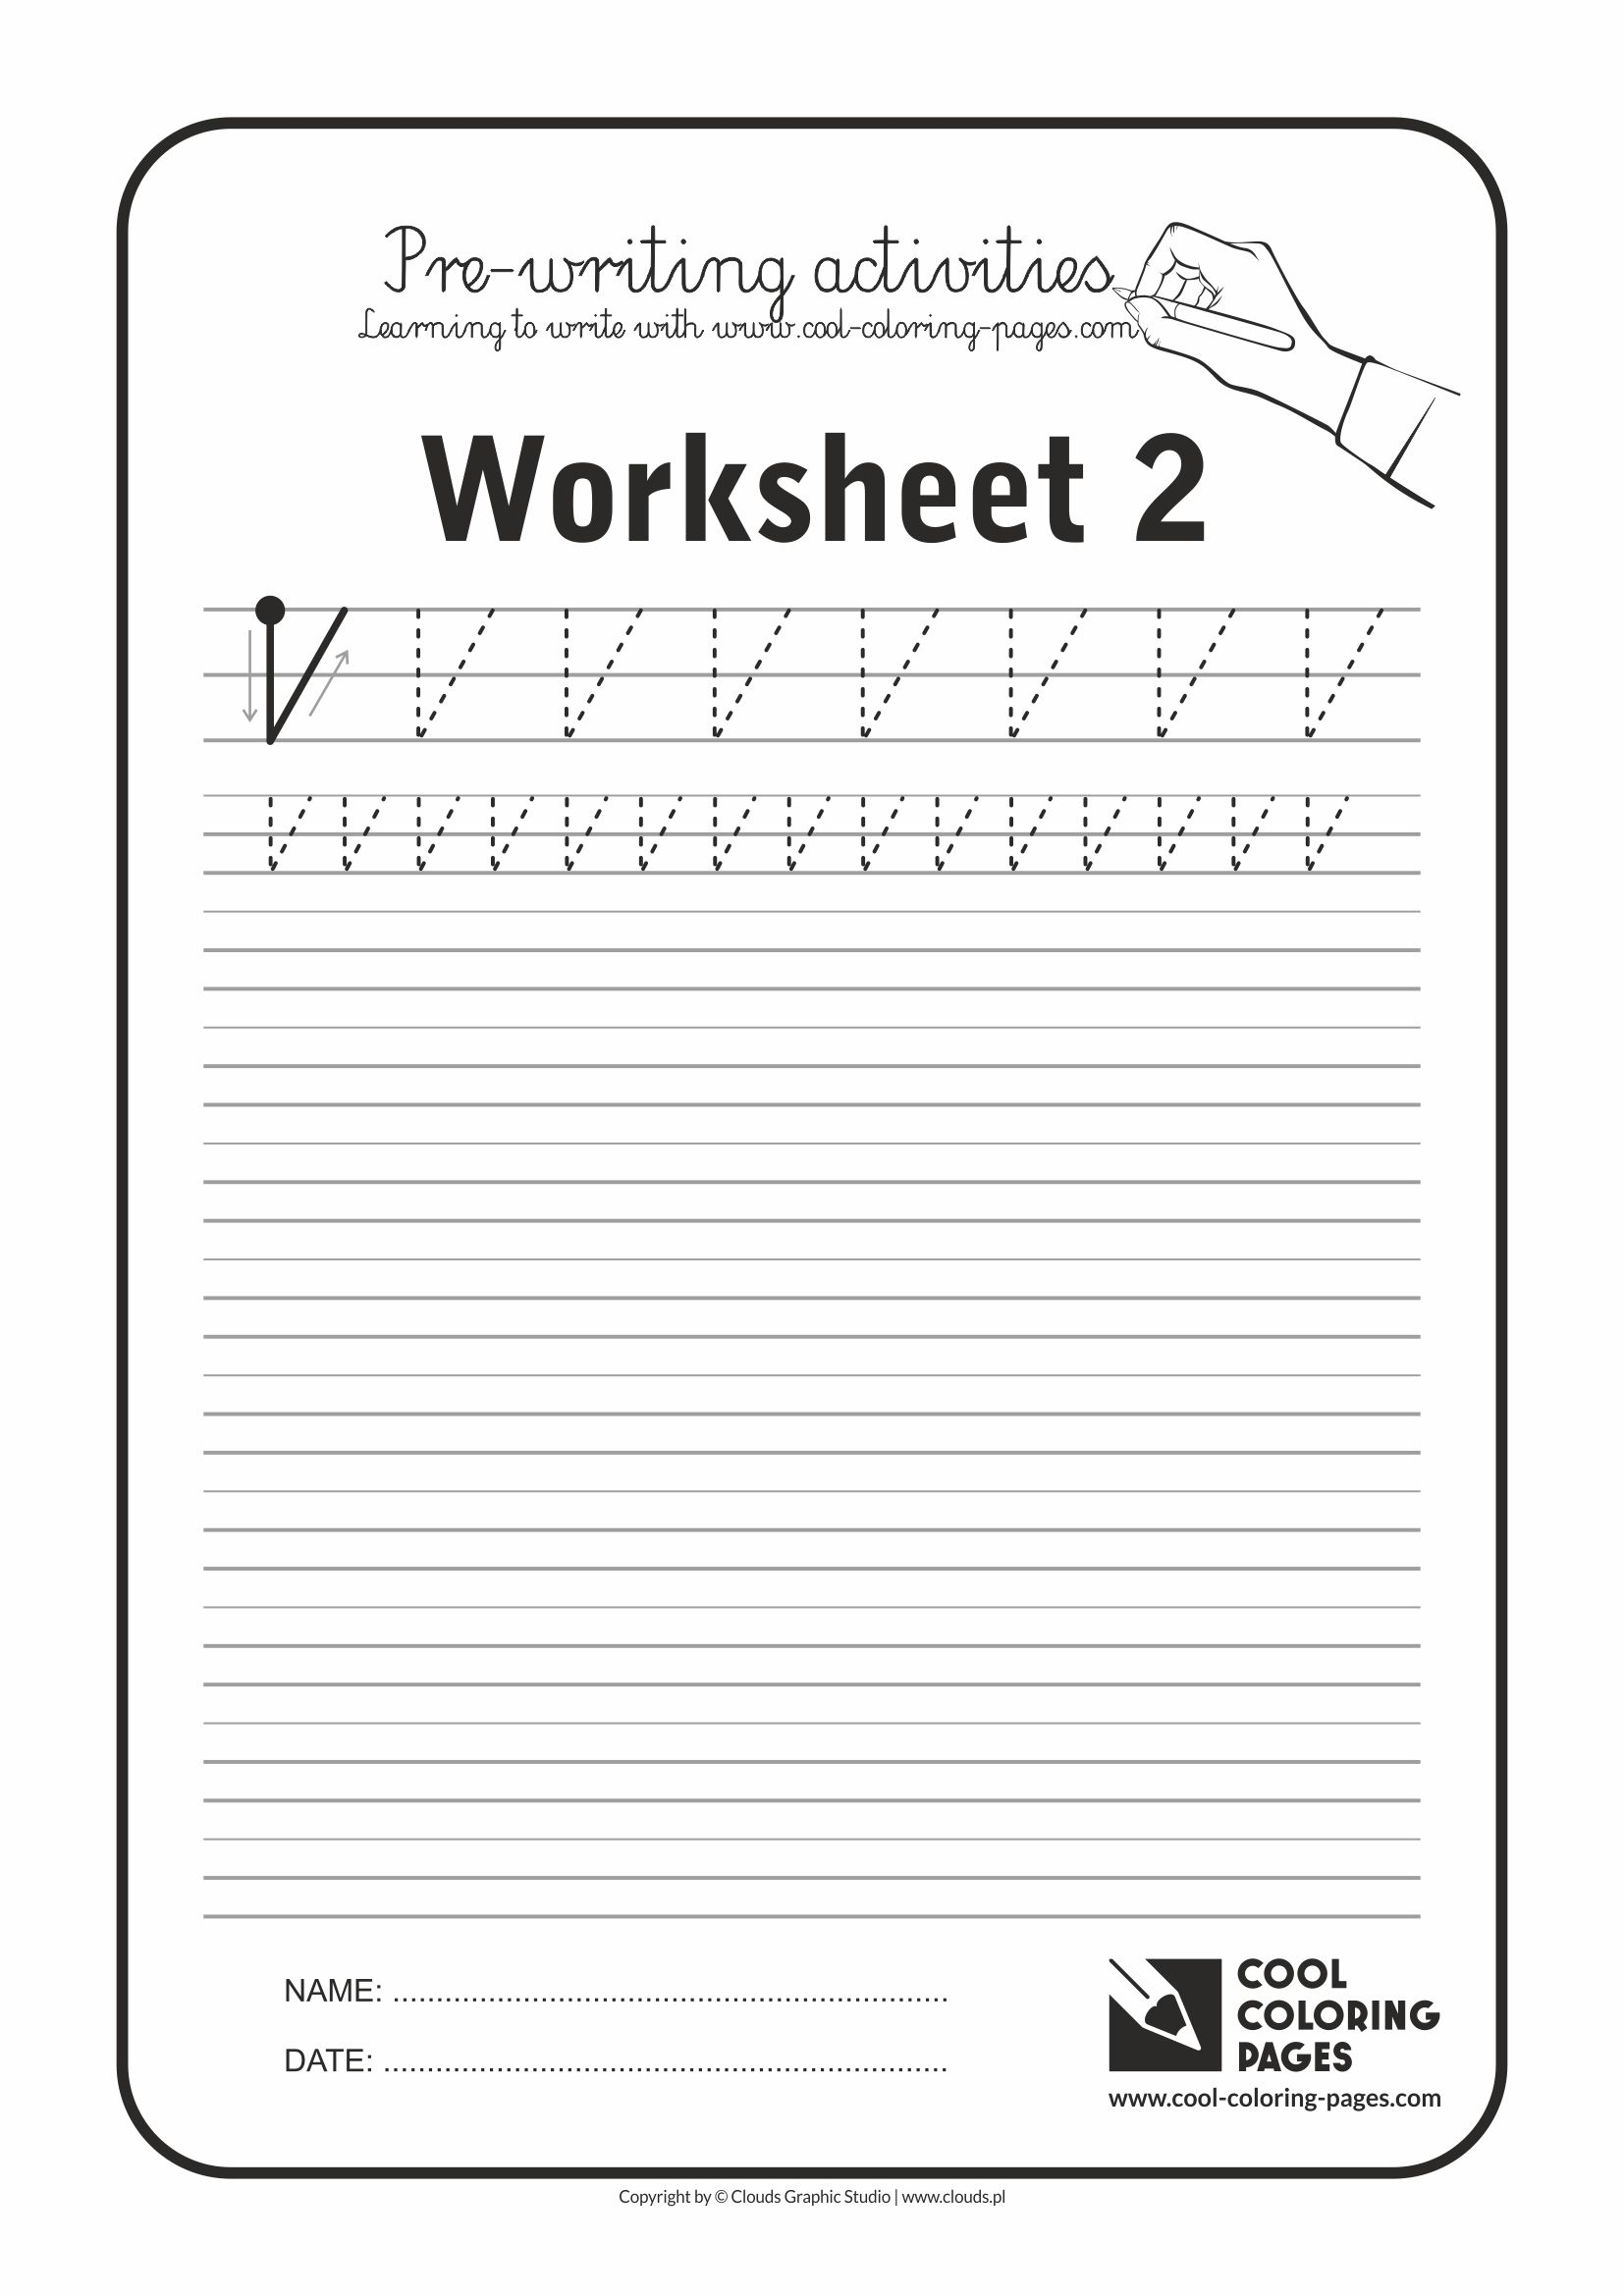 Cool Coloring Pages / Pre-writing activities / Worksheet no.2